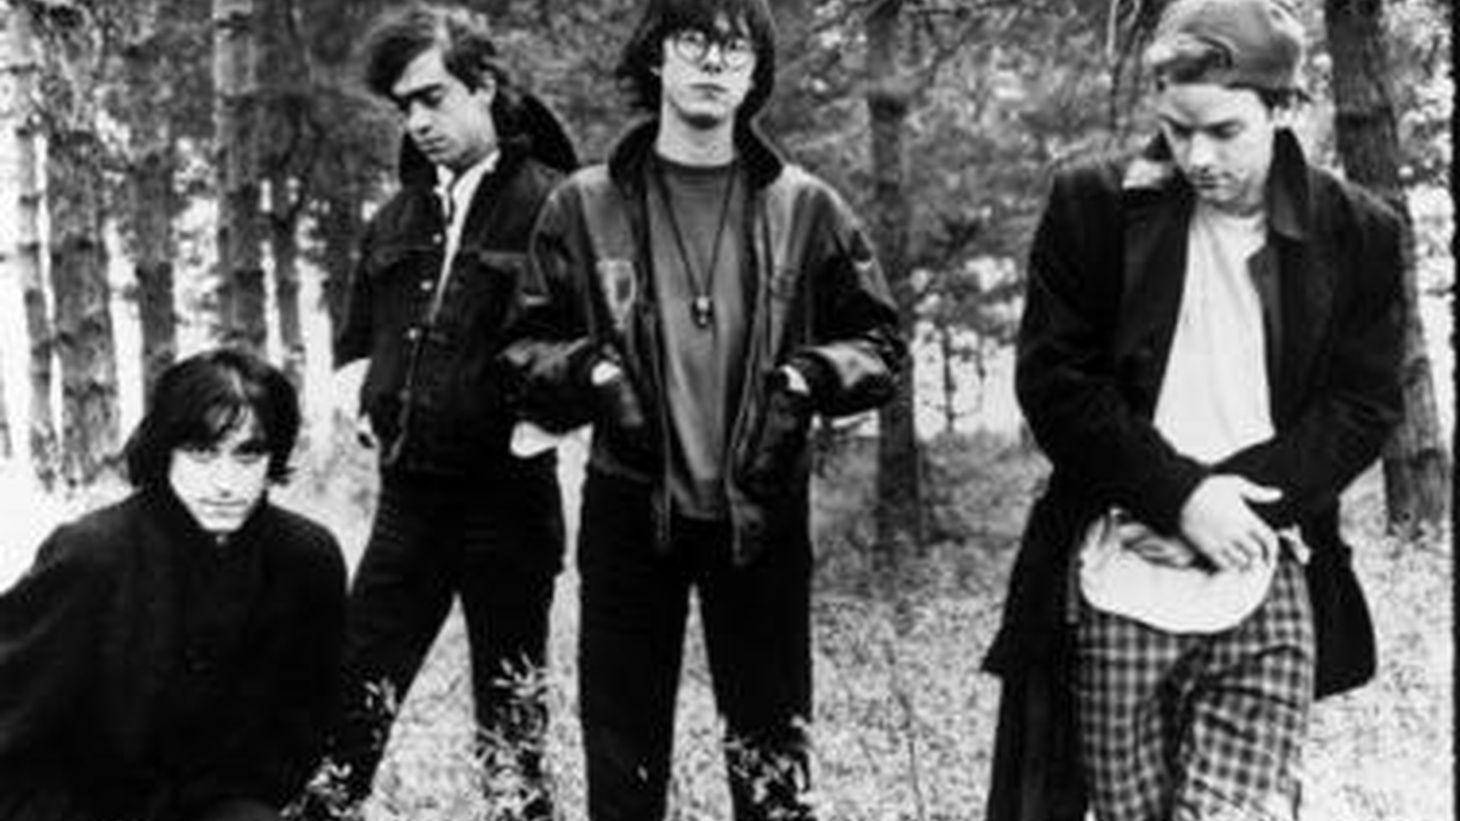 By 1985, Athens, GA-based group R.E.M. had already laid the groundwork for the alternative rock sound they helped pioneer with their two college radio-approved albums.  They decided to switch things up a bit on their third album, Fables of the Reconstruction, by recording it in London with legendary folk-music producer Joe Boyd.